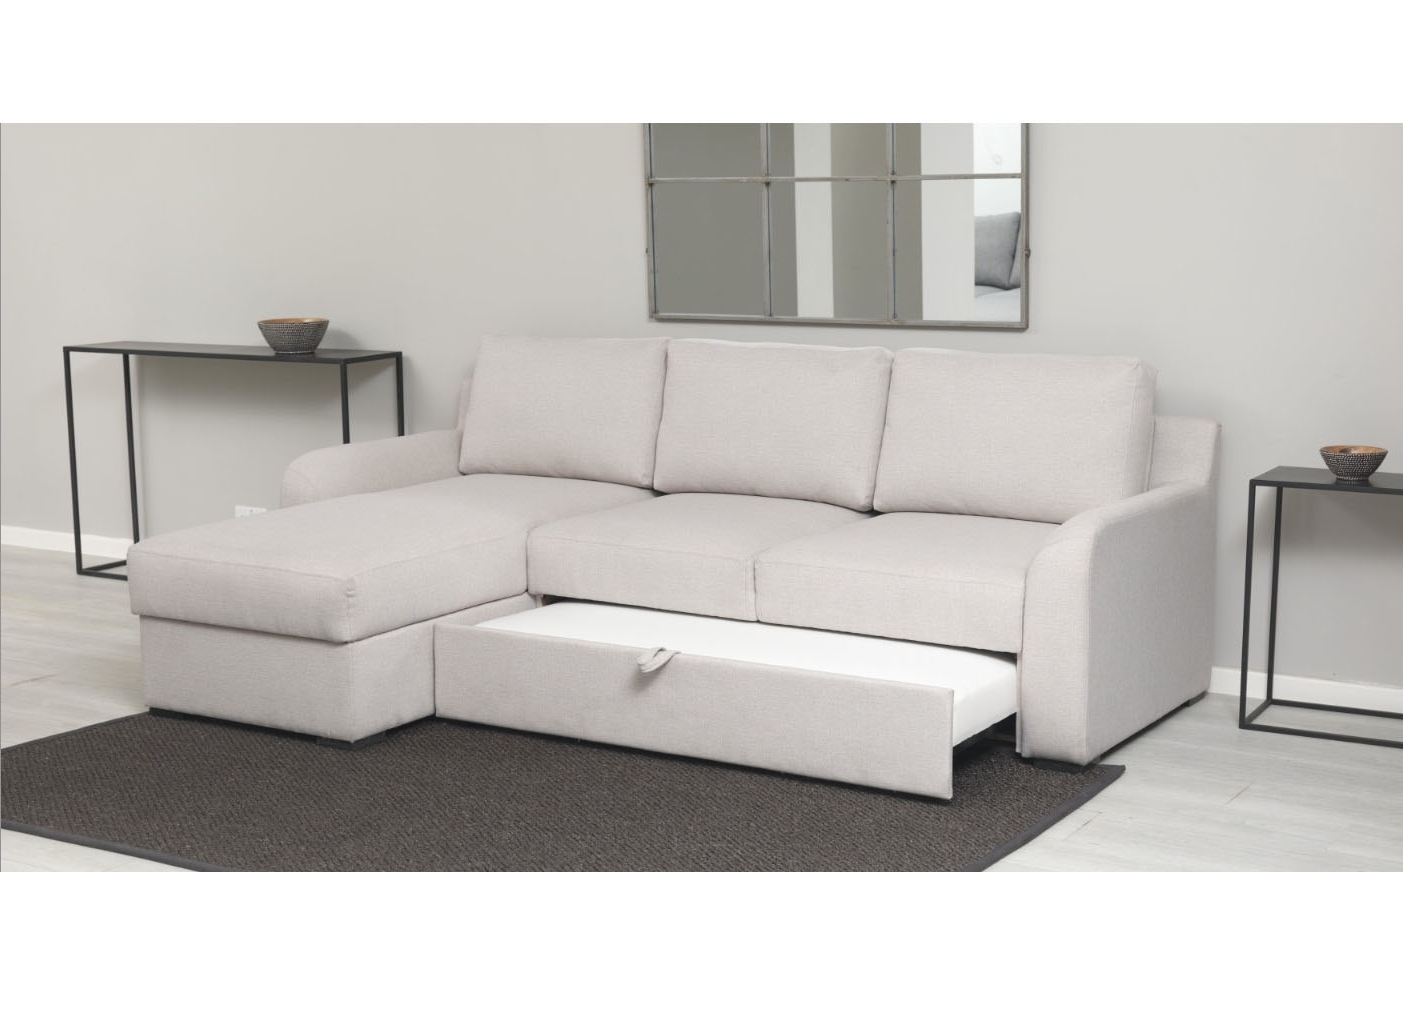 Sofabeds With Chaise With Regard To Popular Abbey Sofabed With Chaise & Storage – Aflair For Home (Gallery 8 of 15)